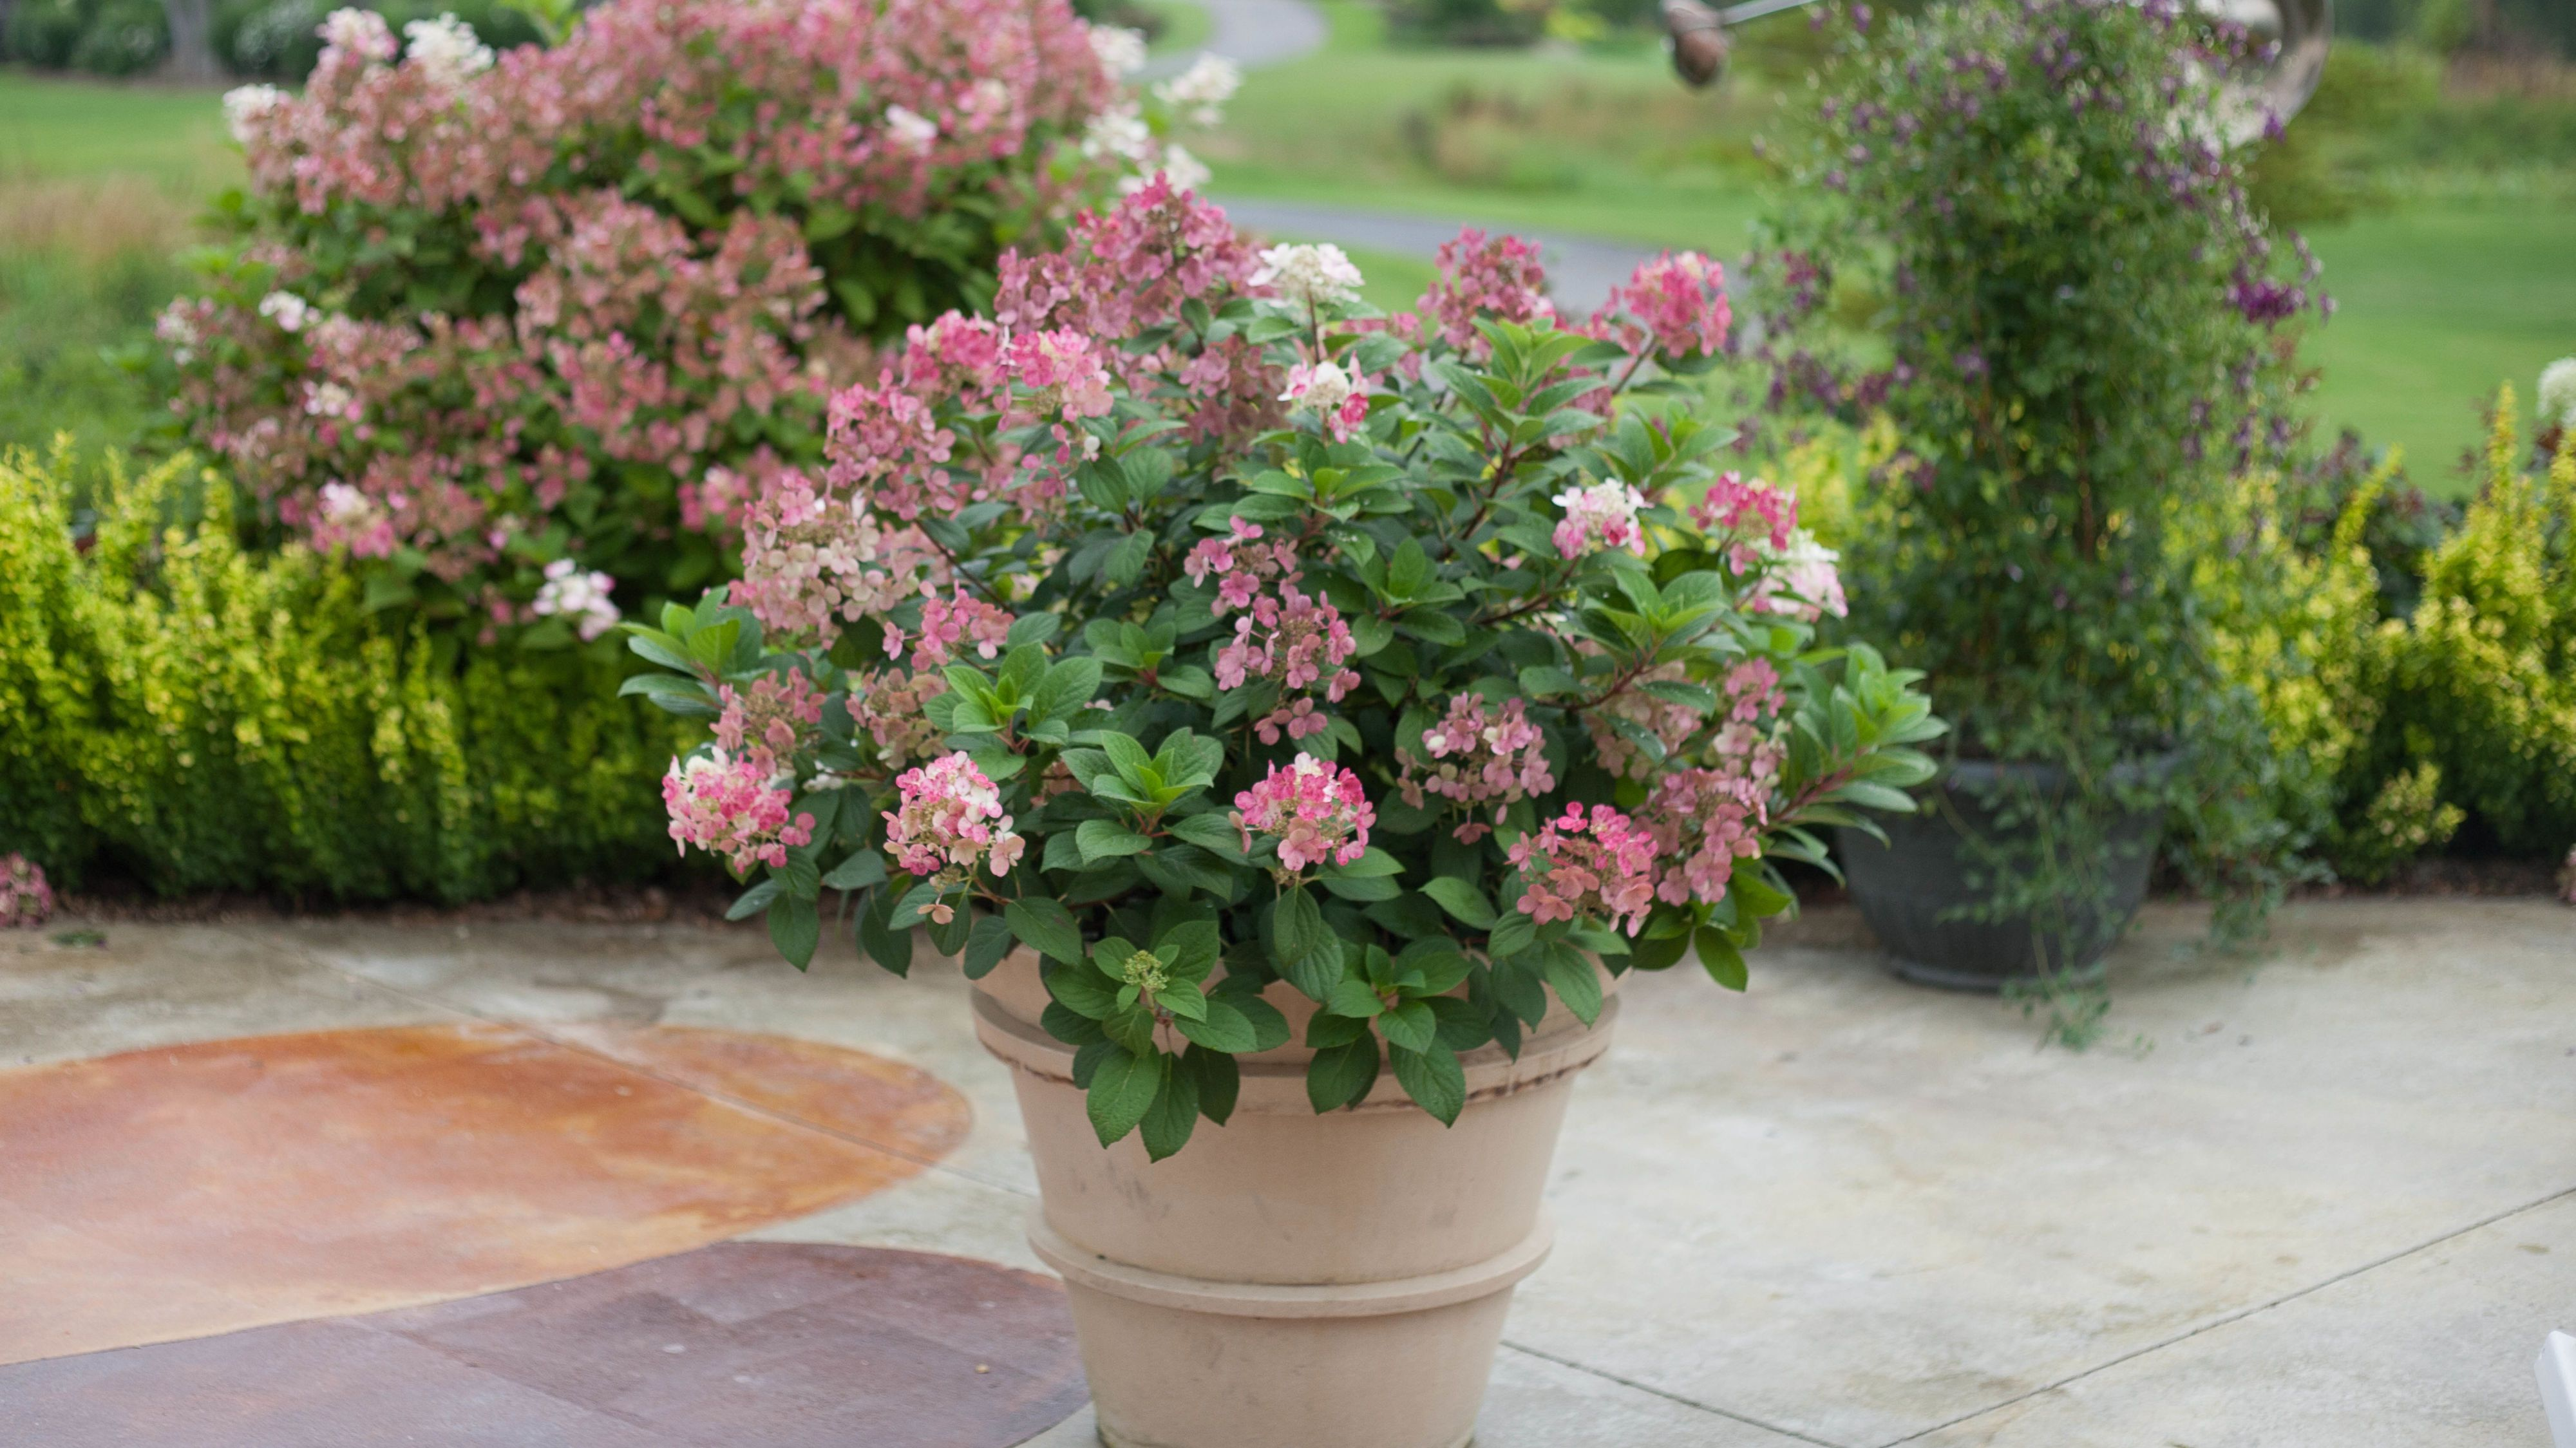 Country Living Magazine & 10 Container Gardening Ideas - Best Plants for Containers